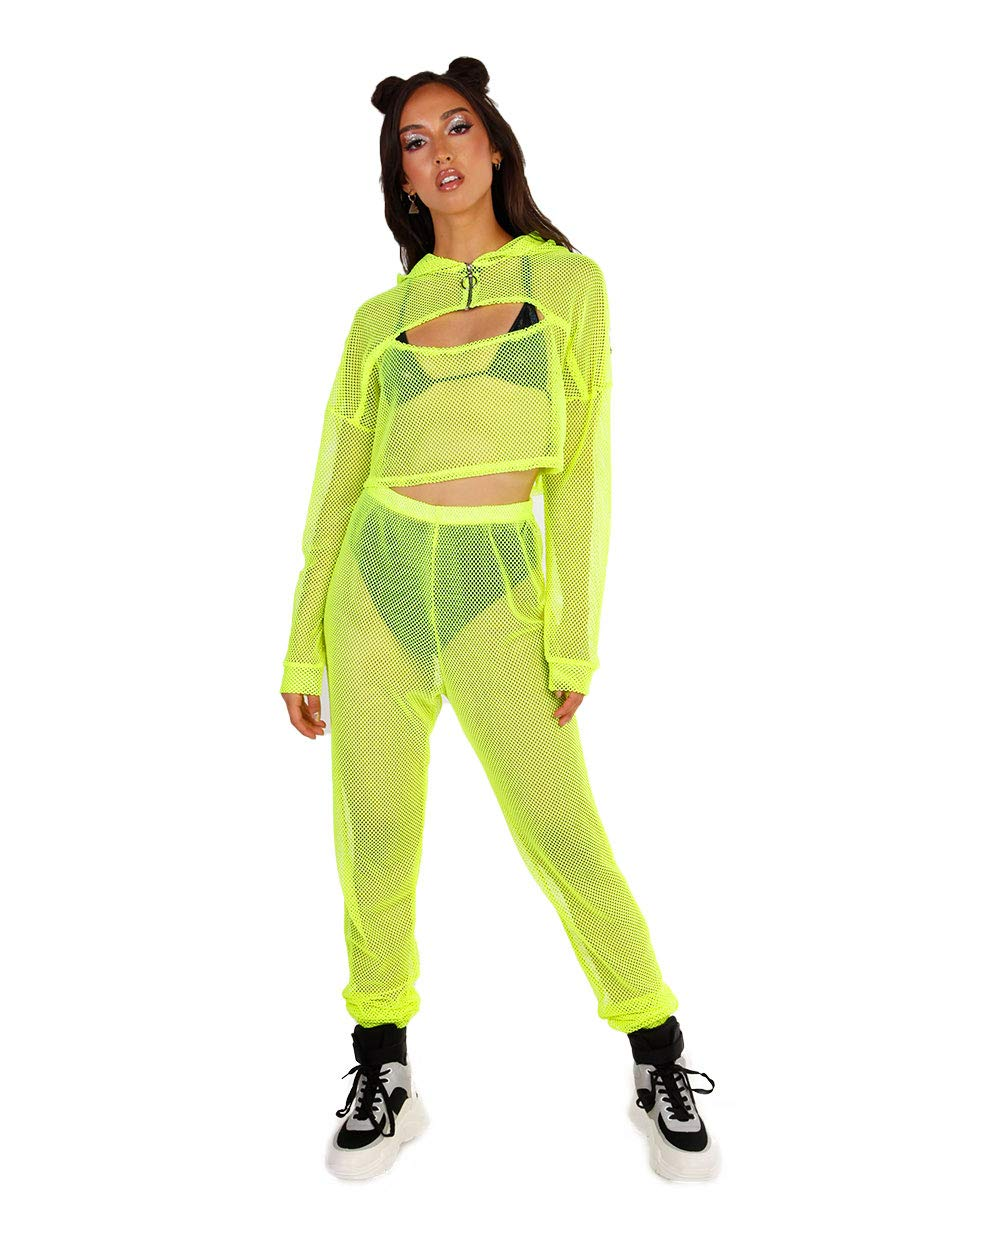 iHeartRaves Neon Yellow Trinity Fishnet 2 Piece Jogger Set (Plus Size 2X) by iHeartRaves